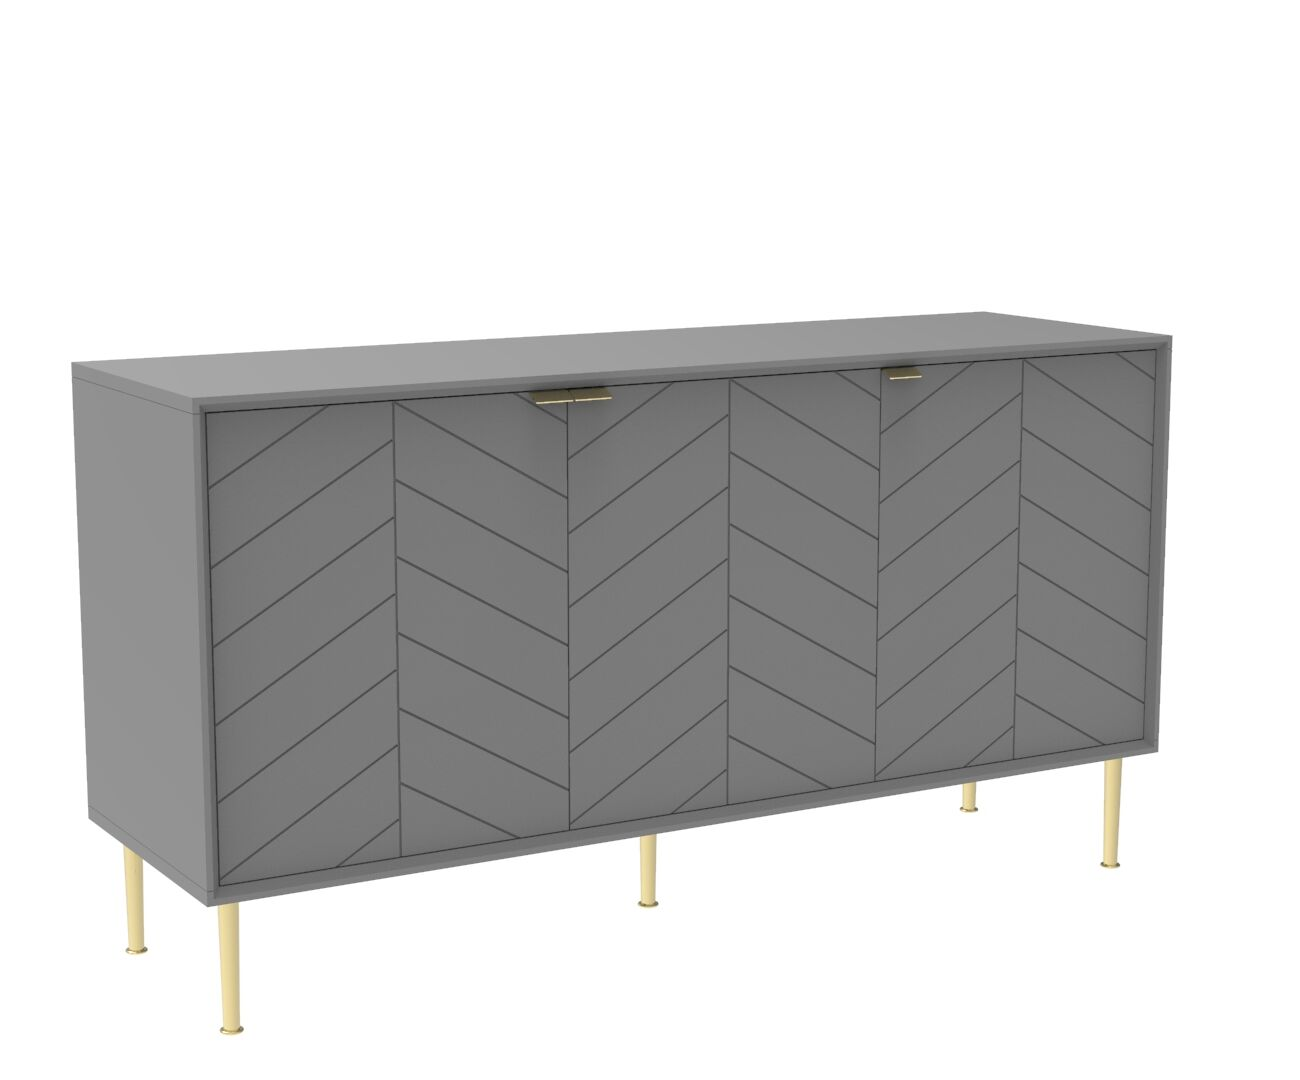 Chevron-patterned Adele Sideboard in Mist Grey and Brass